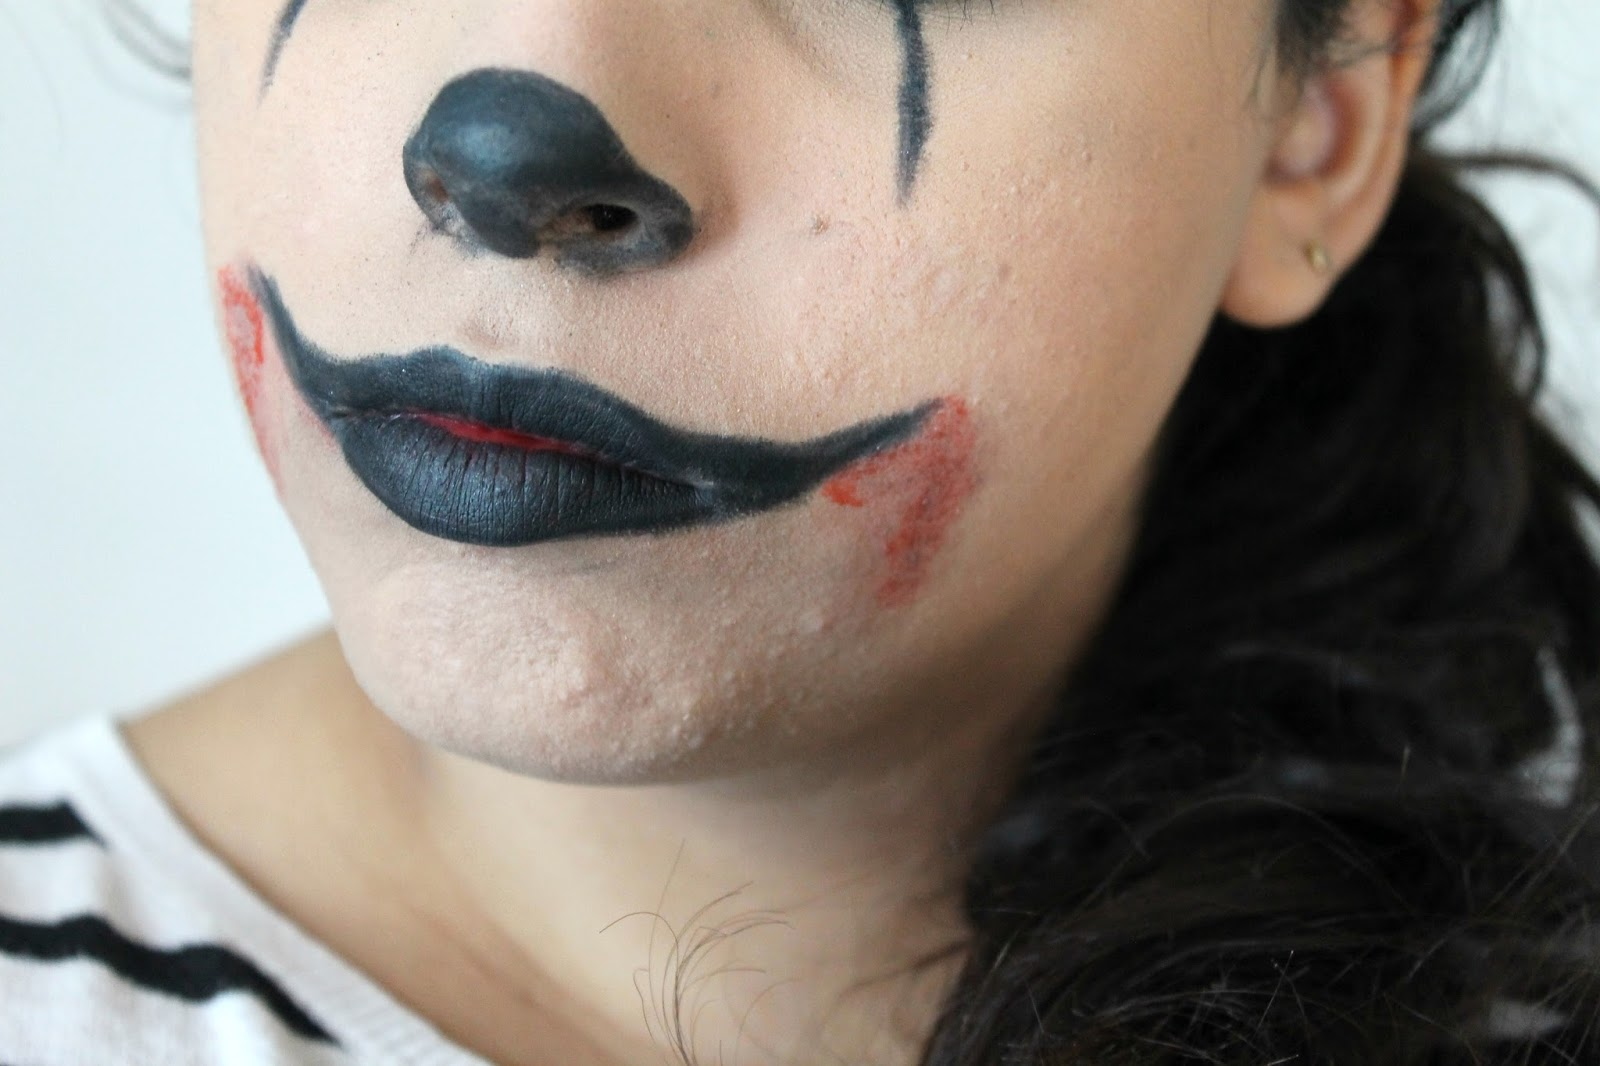 30/10/14 / 31th october, beauty, come vestirsi ad halloween, diy halloween,  halloween makeup, halloween party, killer clown, trucco occhi castani,  trucco